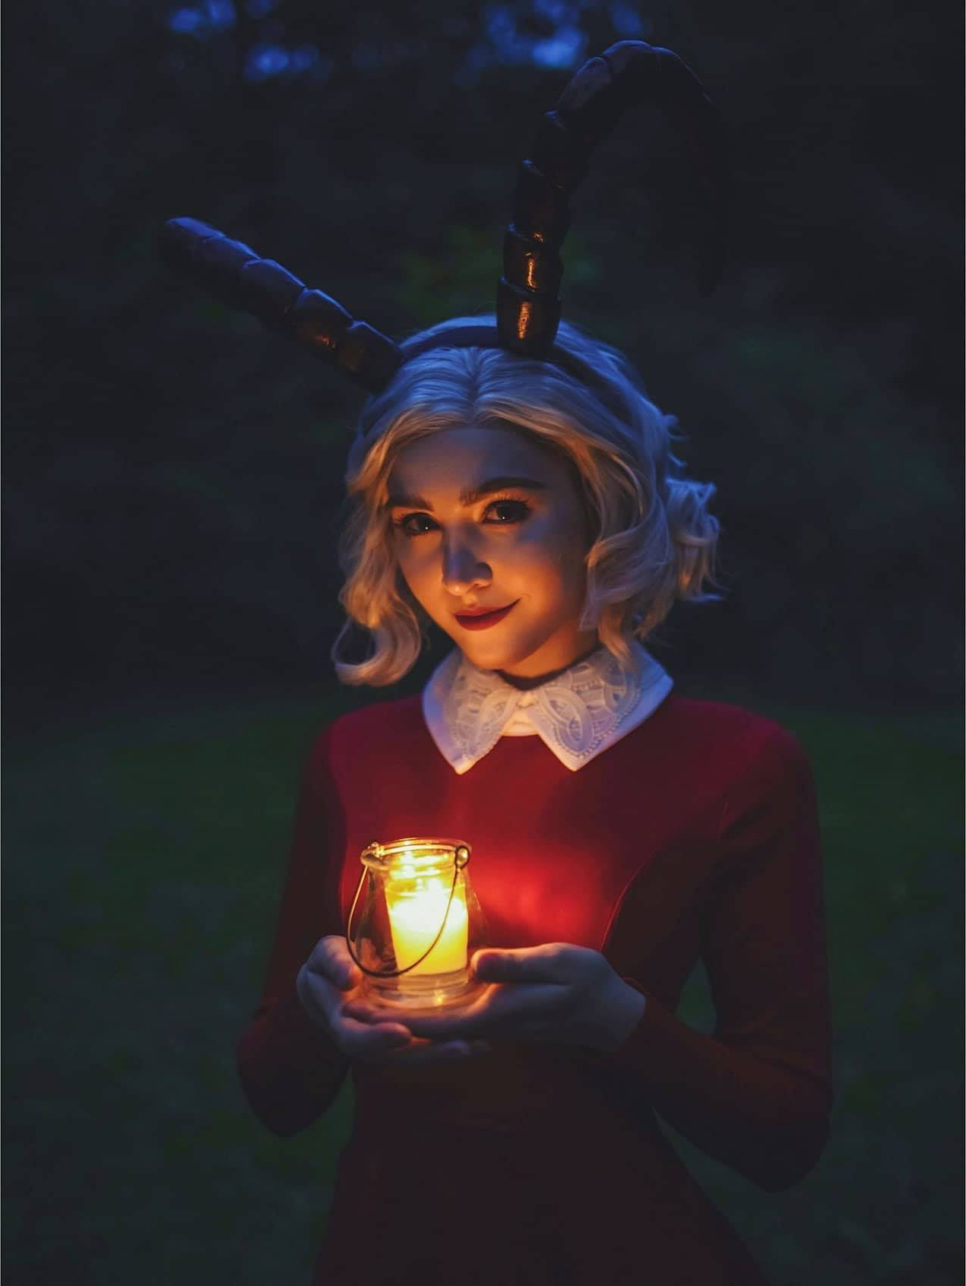 Sabrina | Chilling Adventures of Sabrina